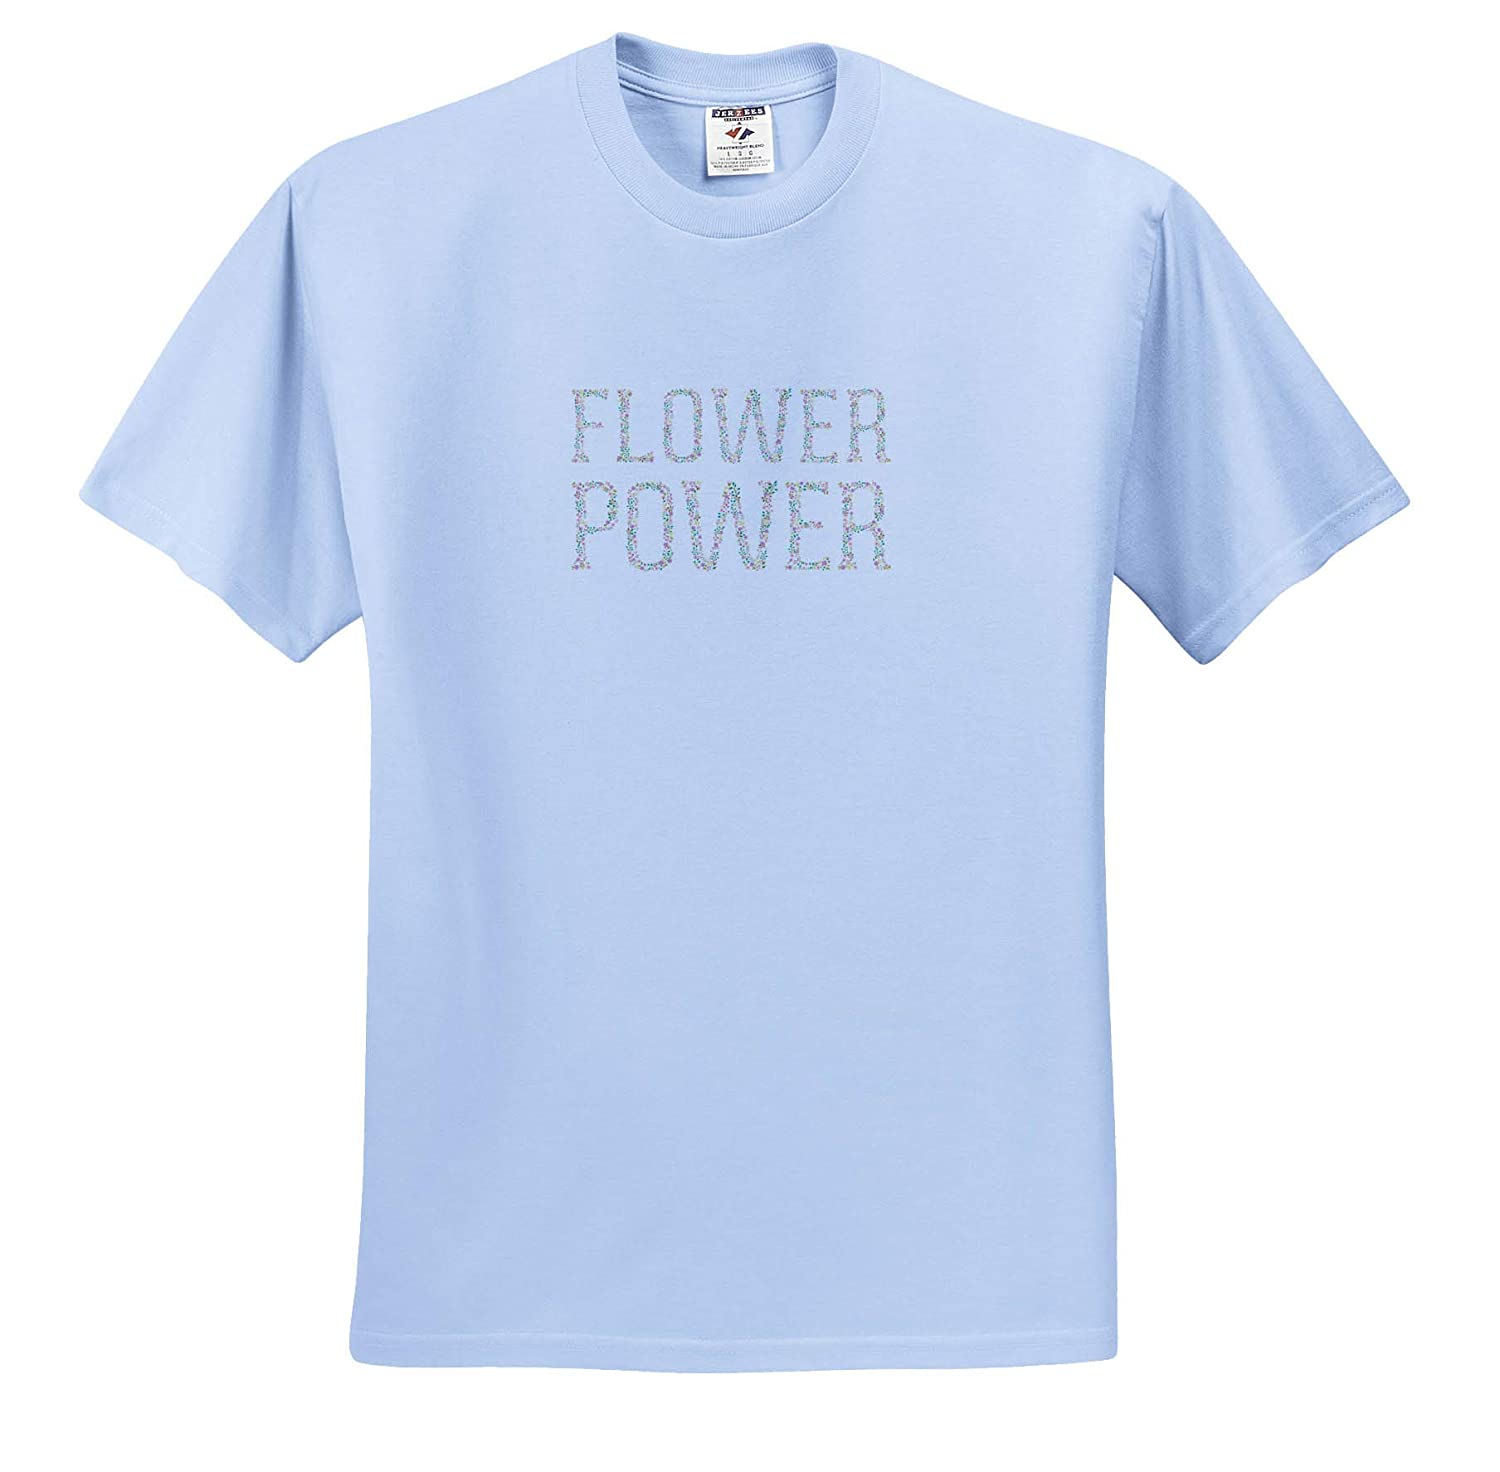 Flowers Text T-Shirts Cool Text Flower Power 3dRose Alexis Design Pastel Colors Each Letter Made of Flowers